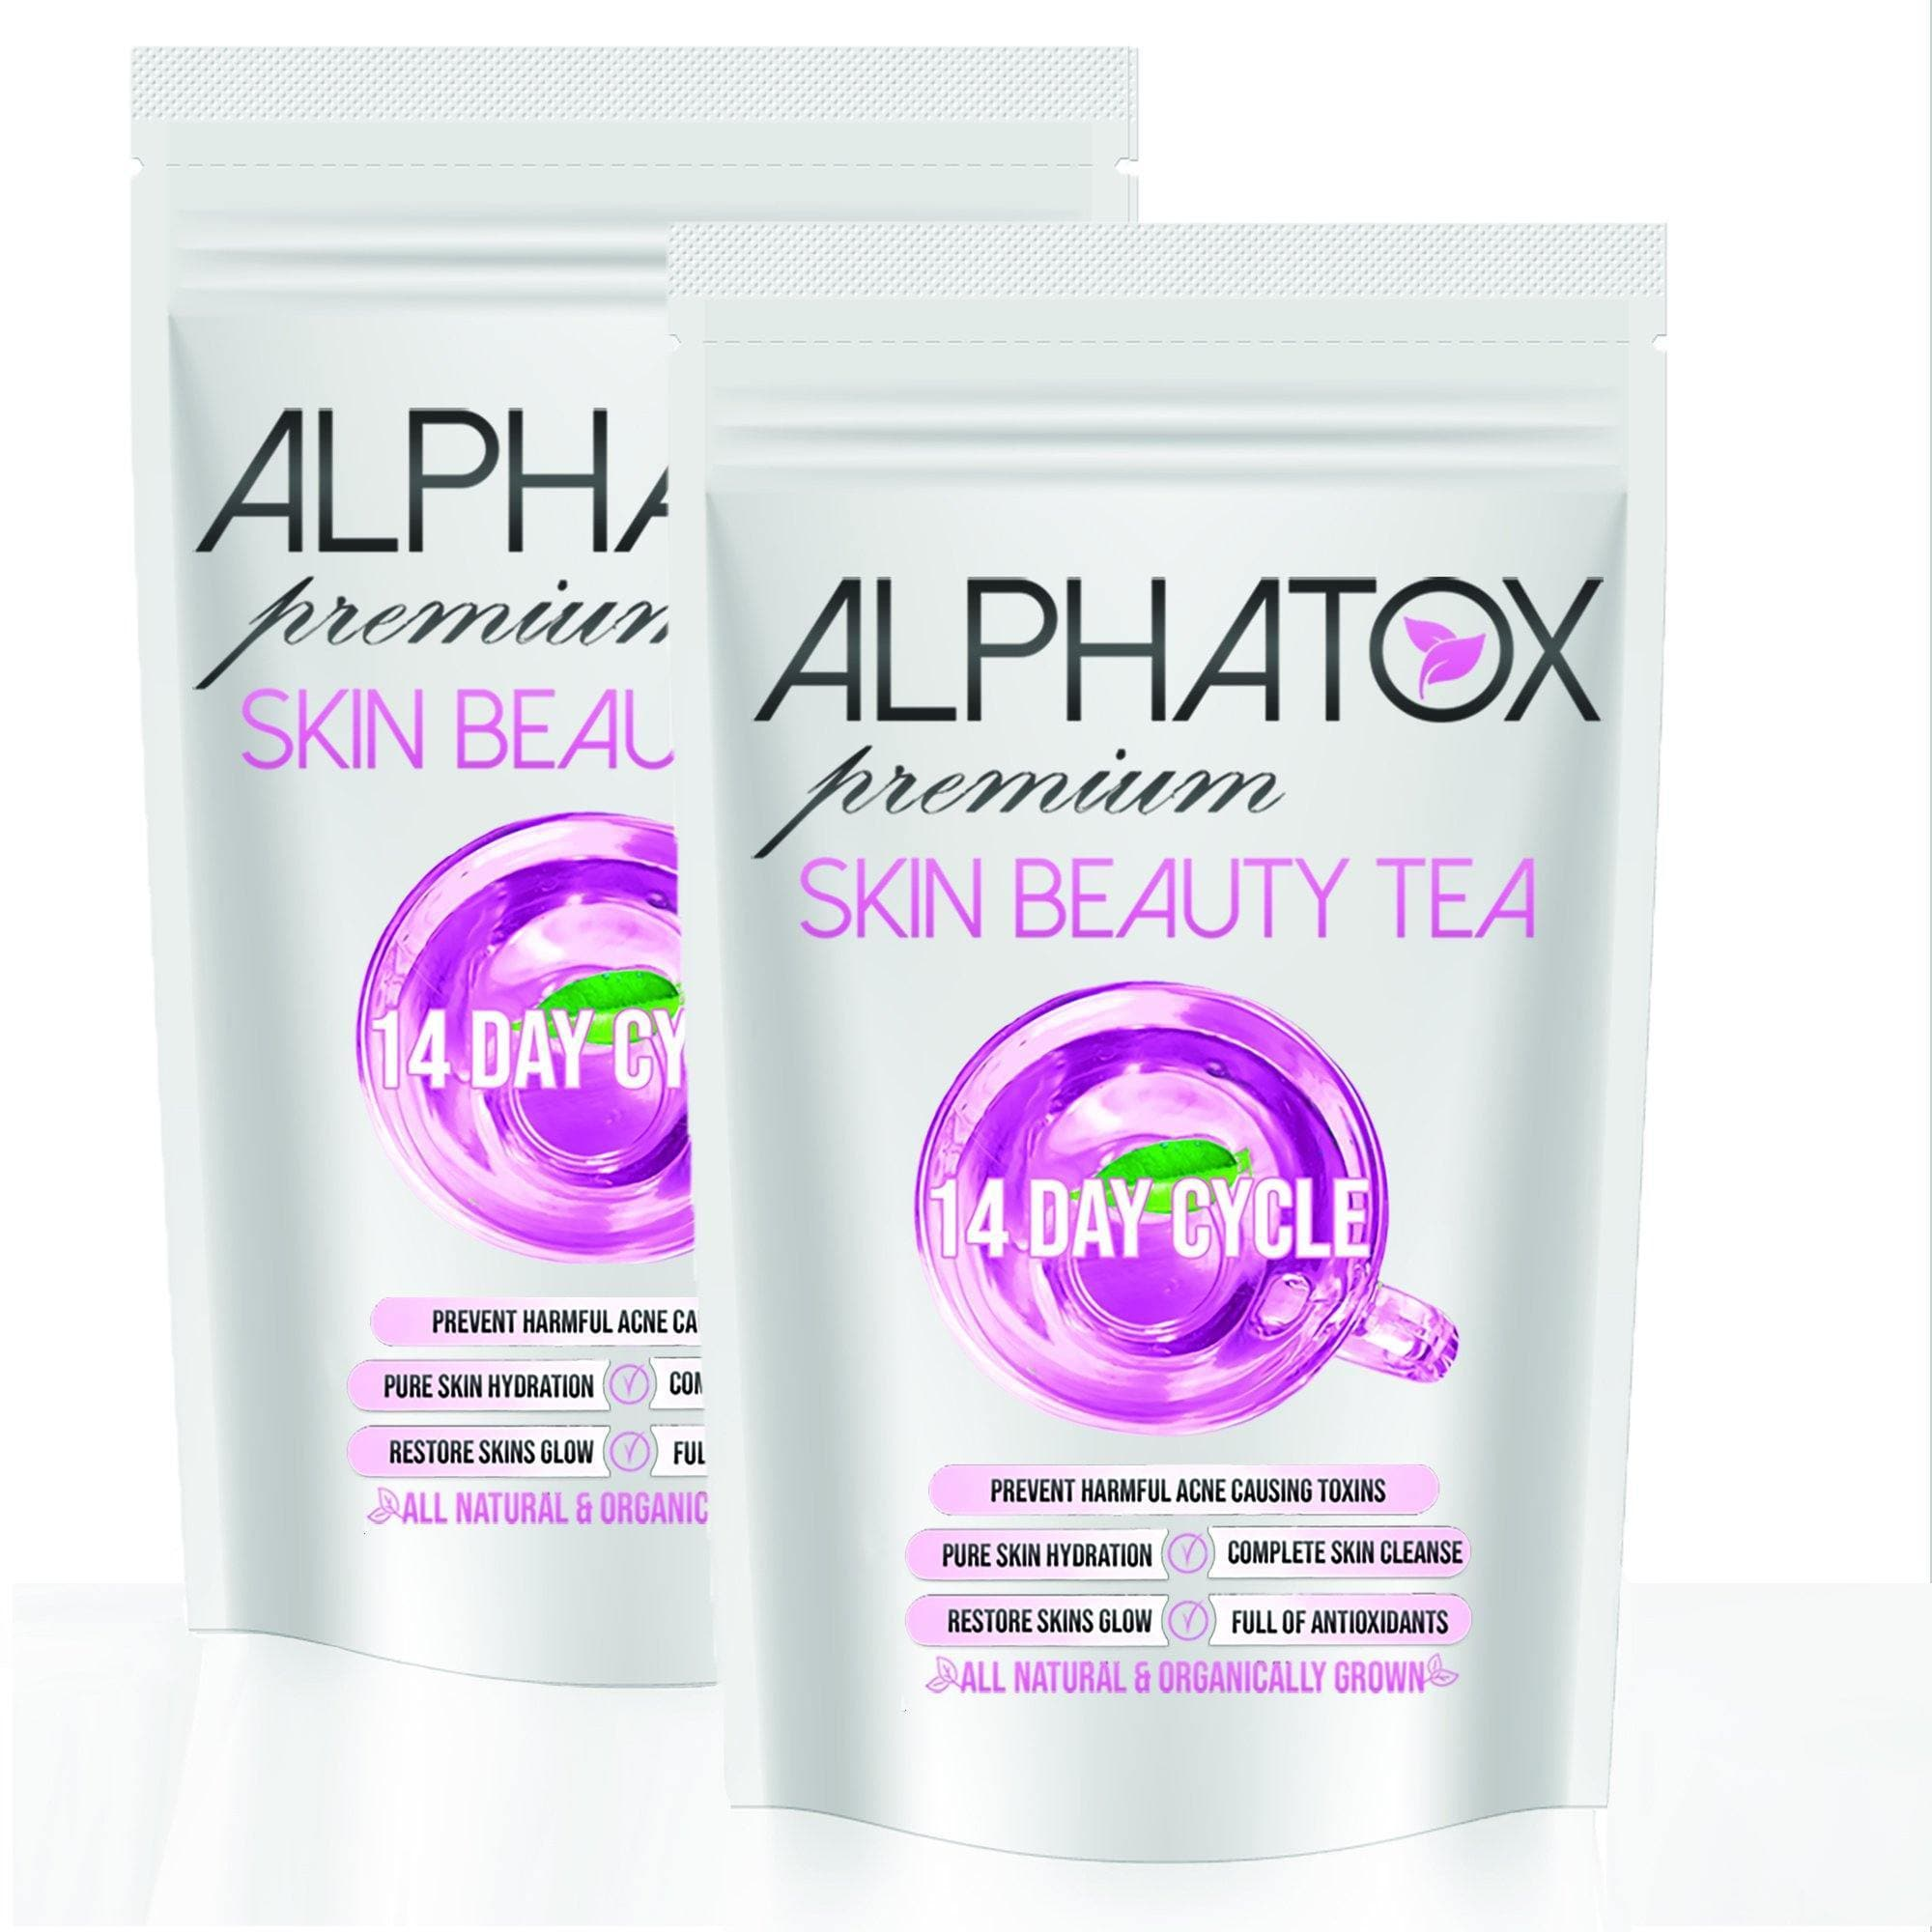 Alphatox Skin Cleanse Tea (28 Day) - Alphatox Premium Fitness Teas